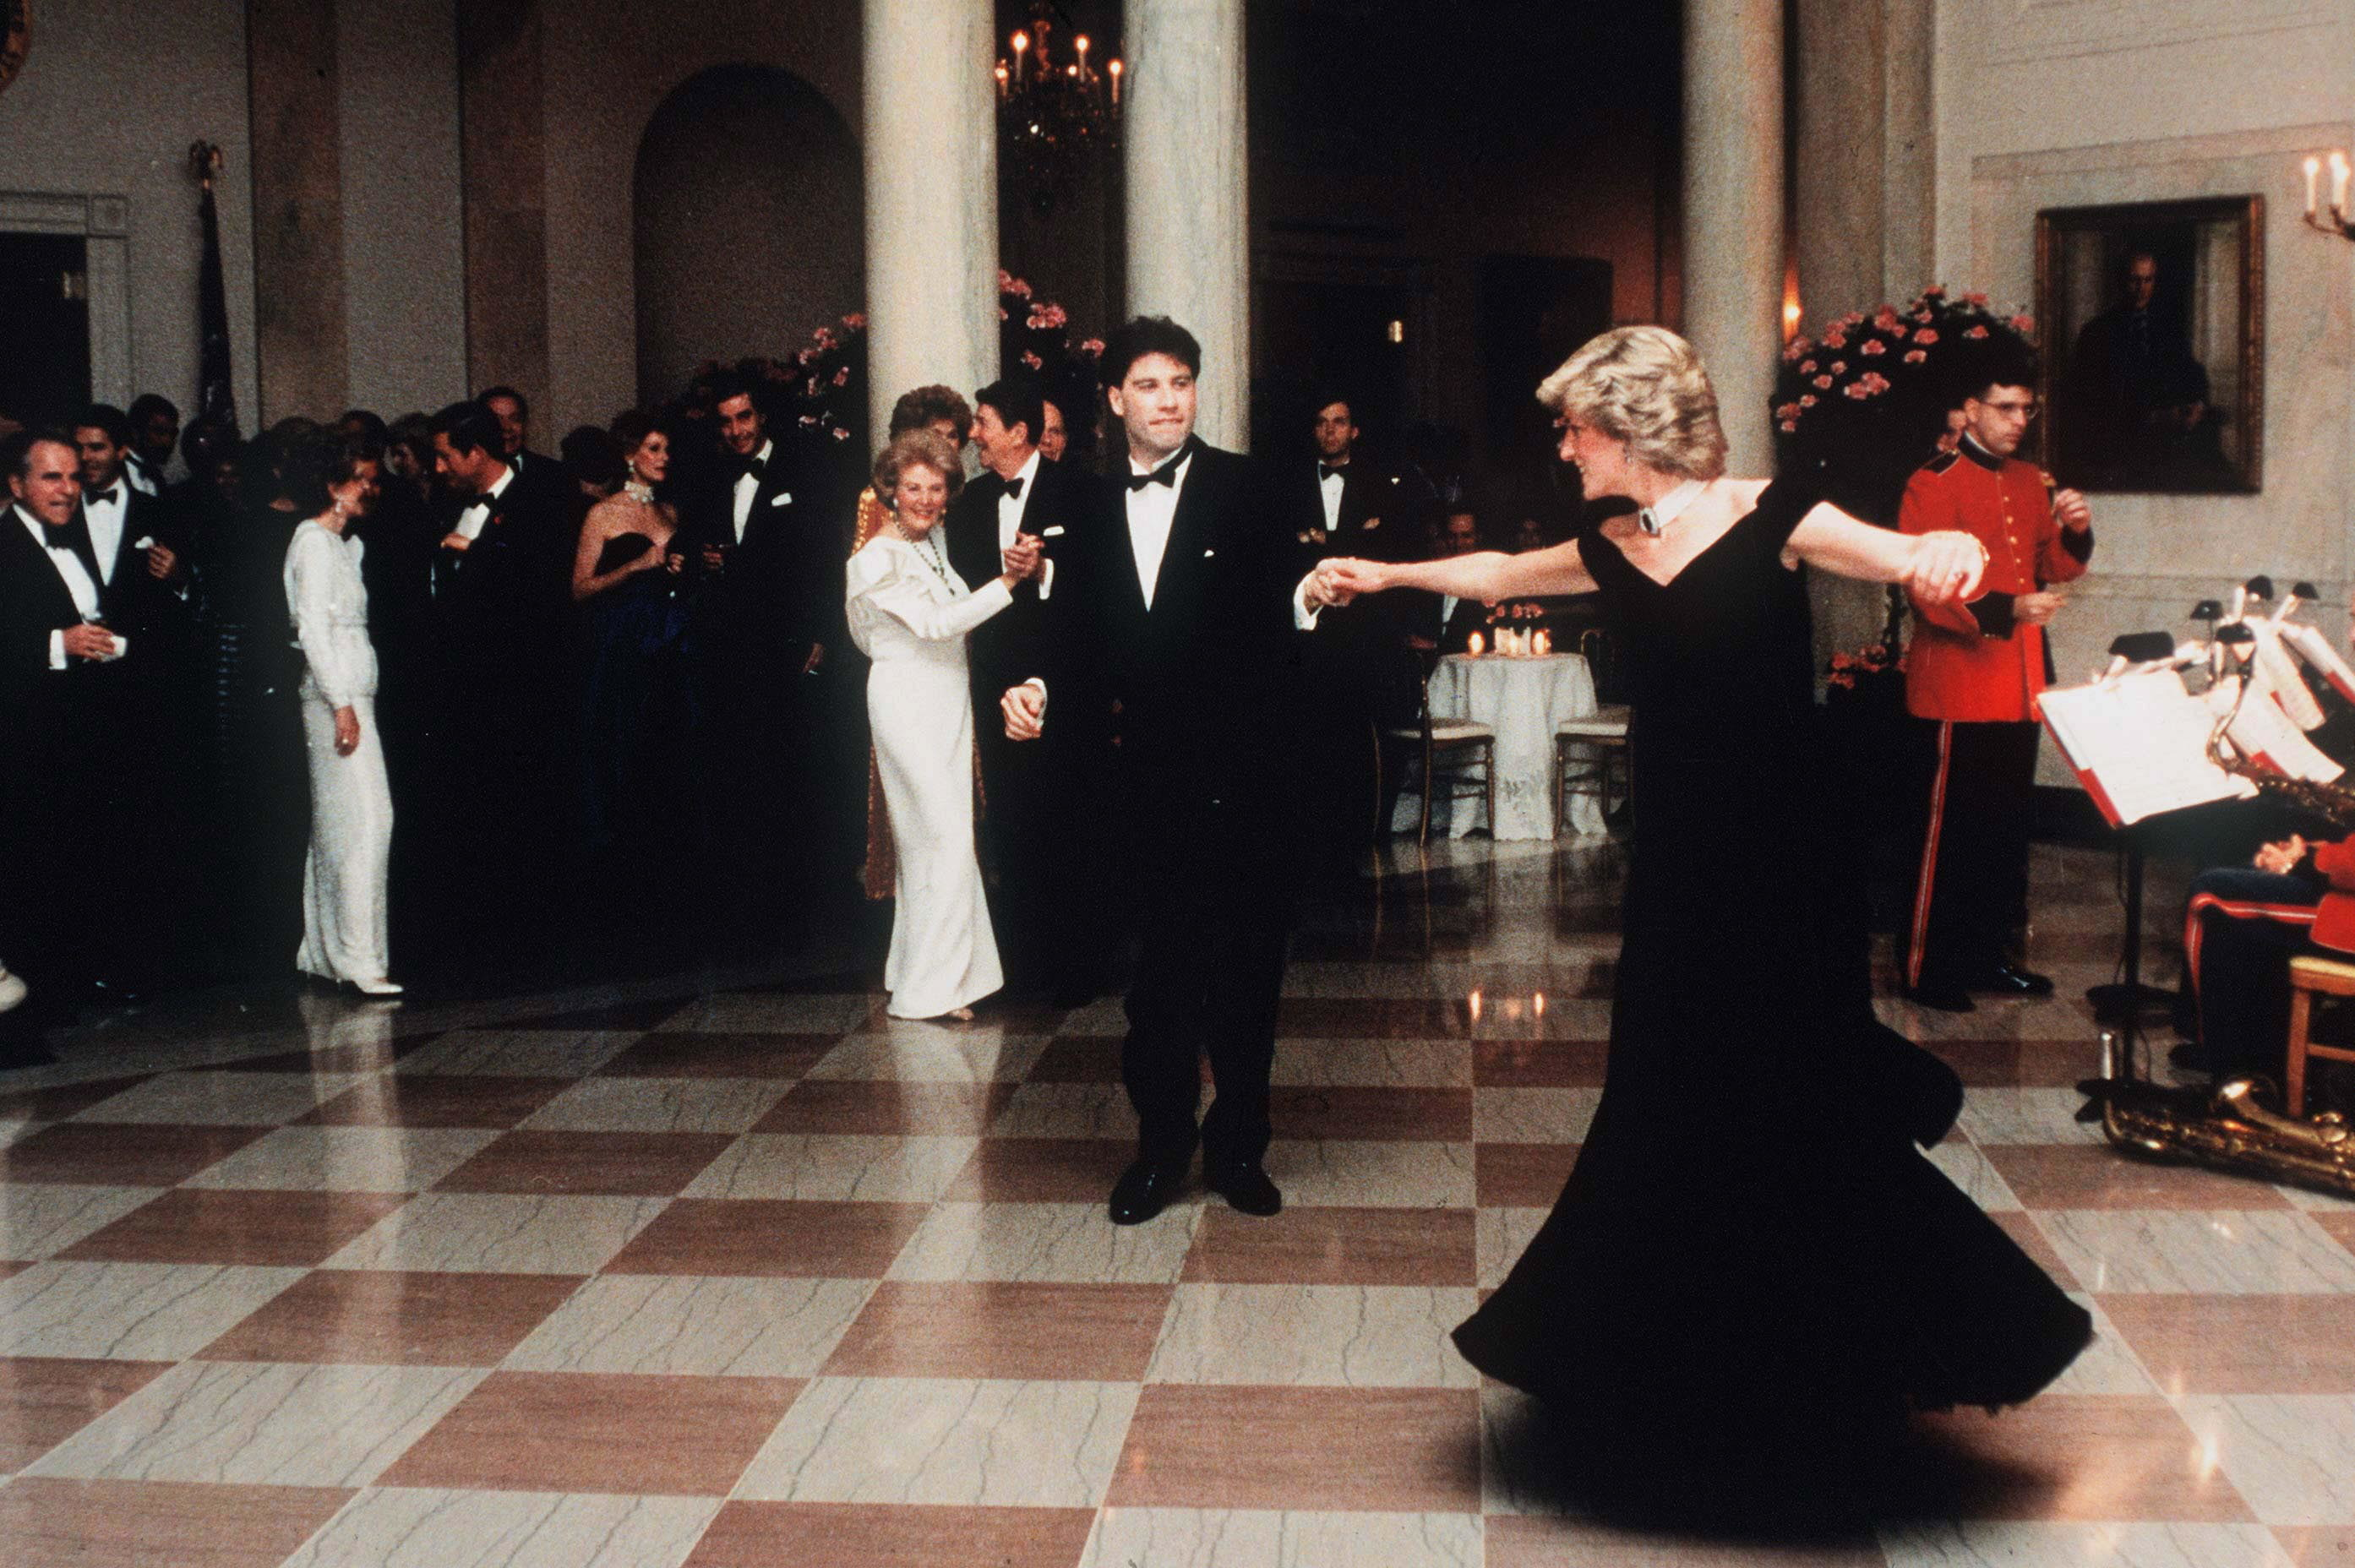 Princess Diana dances with John Travolta at The White House in Nov. 11, 1985.